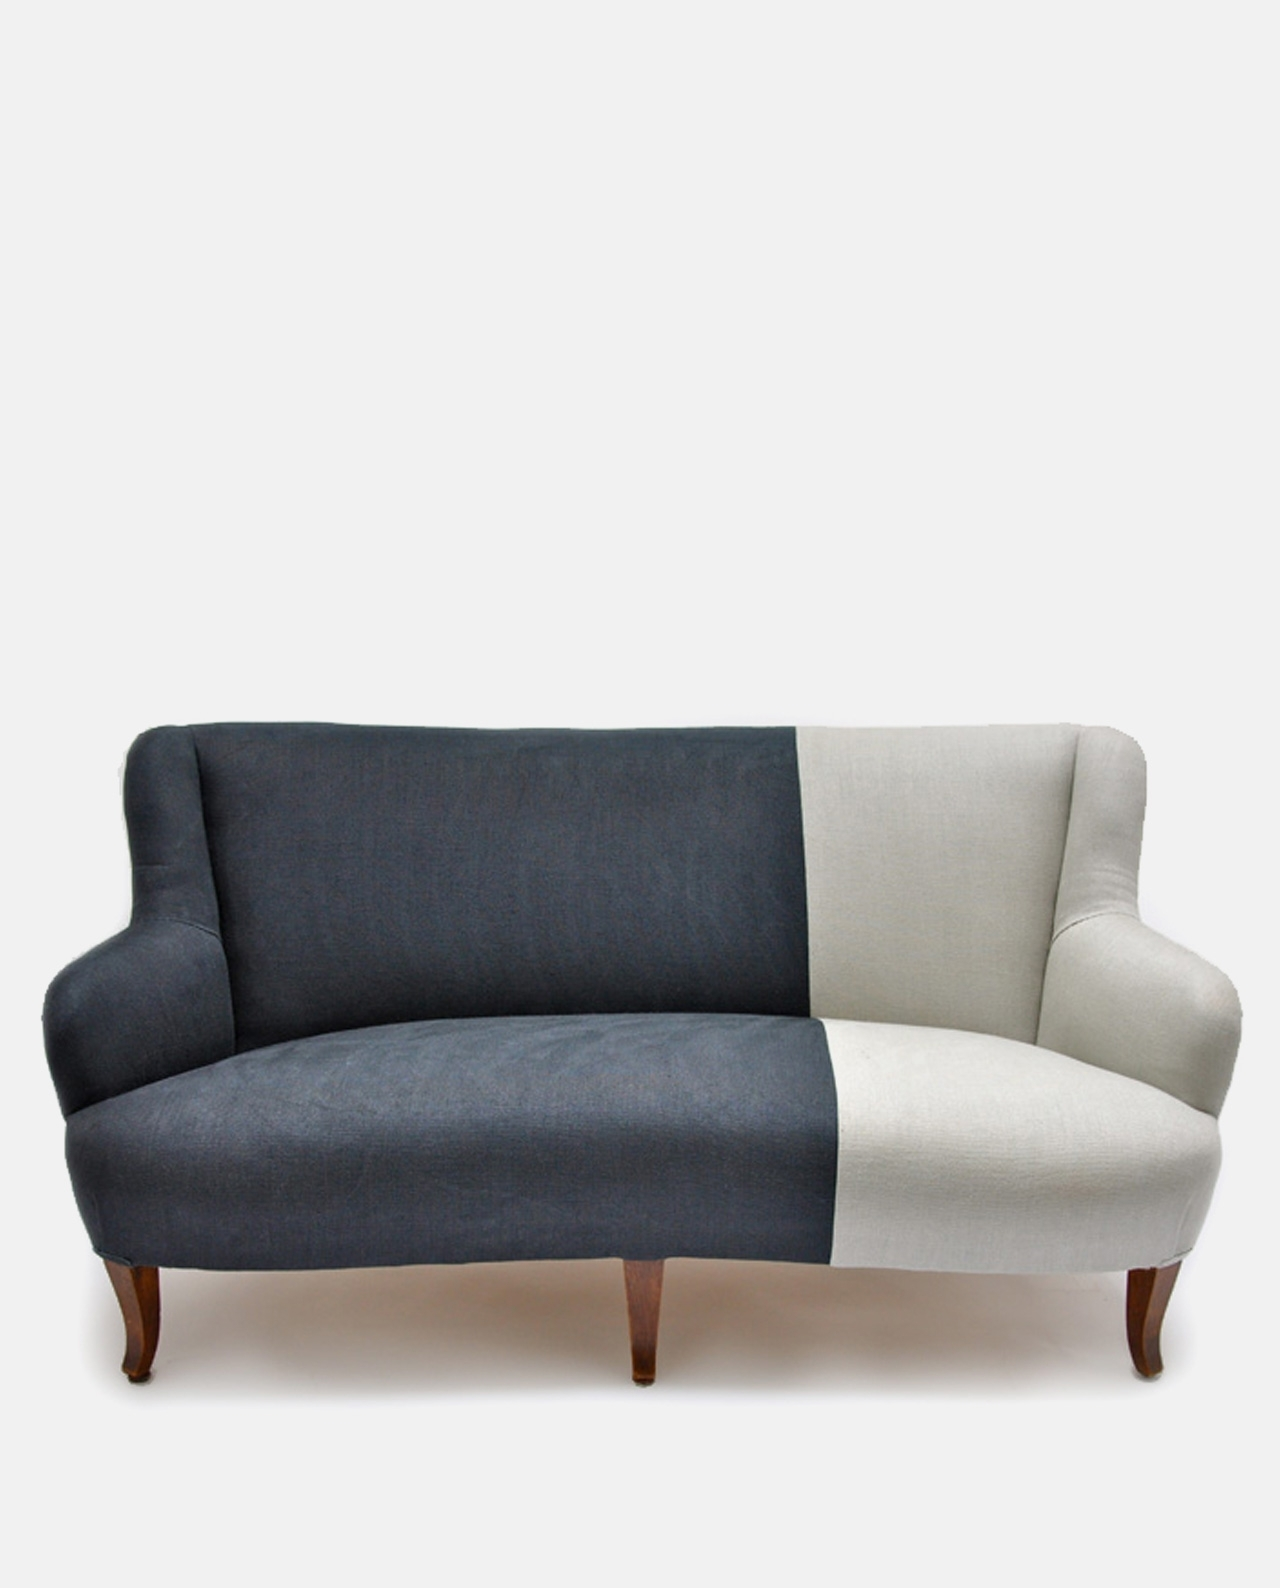 Vintage Two-Tone Sofa Designers Guild Linen | Ines Cole intended for Vintage Sofas (Image 9 of 10)